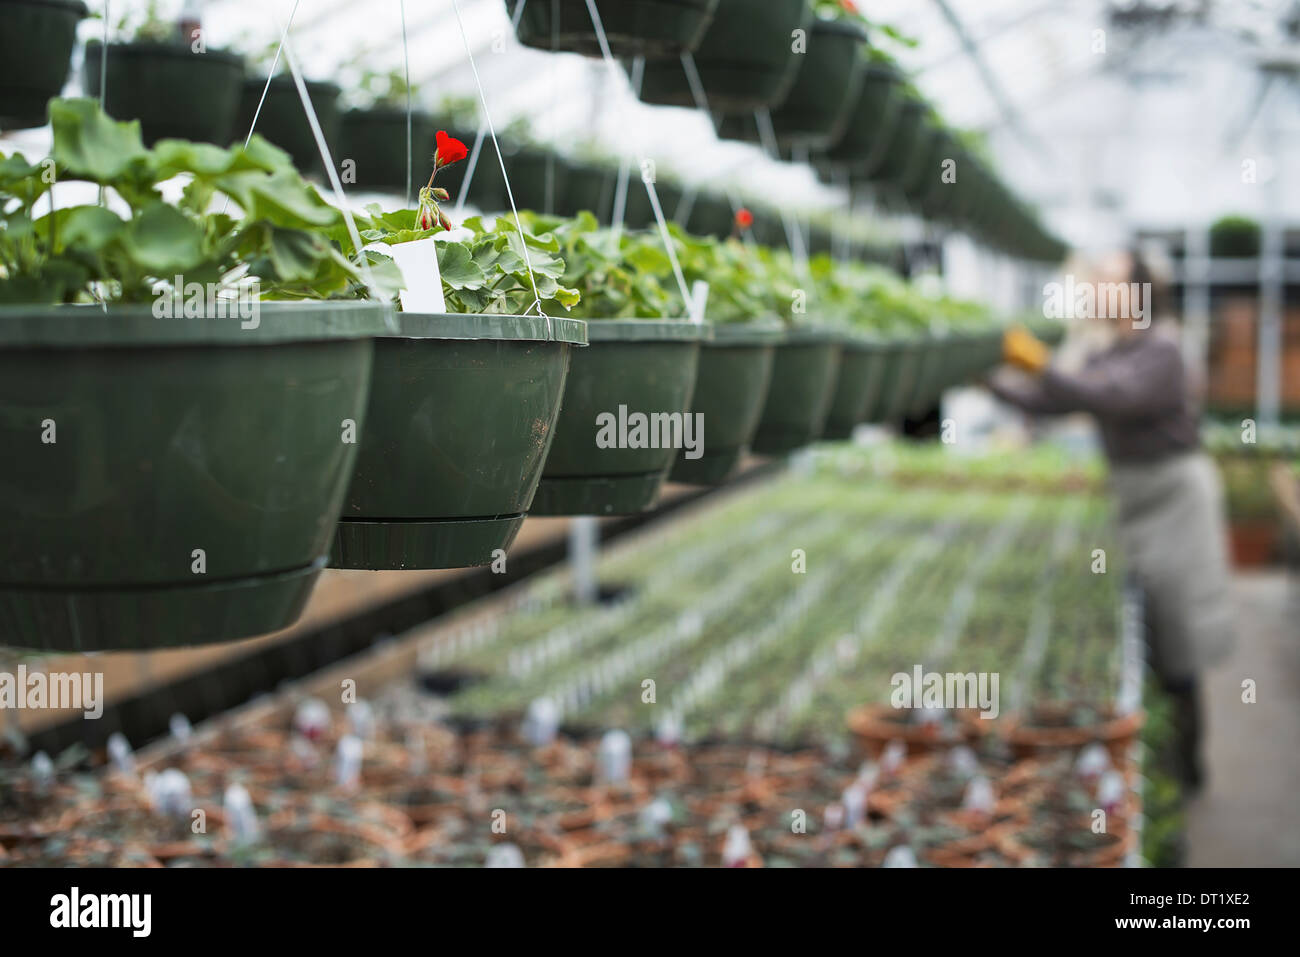 Spring growth in an organic plant nursery A glasshouse with hanging baskets and plant seedlings - Stock Image